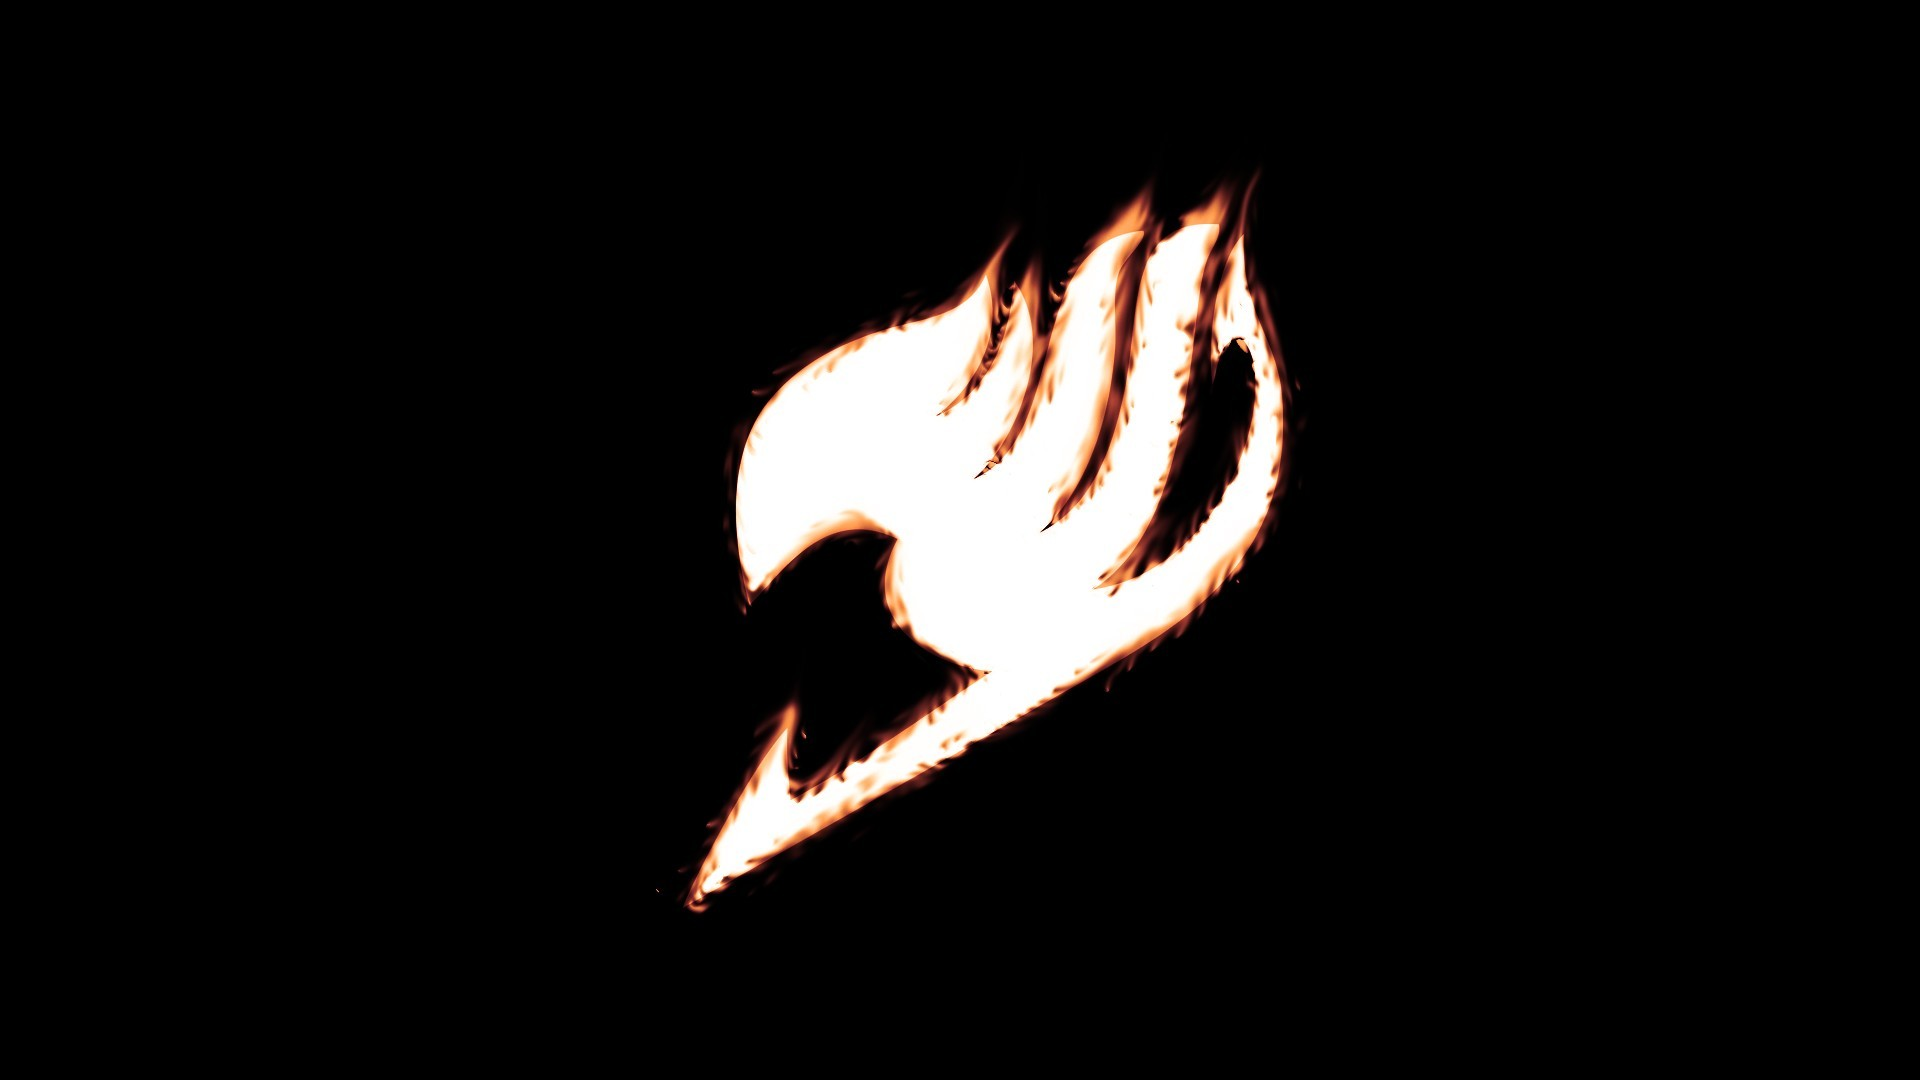 1920x1080 Fairy Tail Logo Wallpapers  Backgrounds | Unique HD .